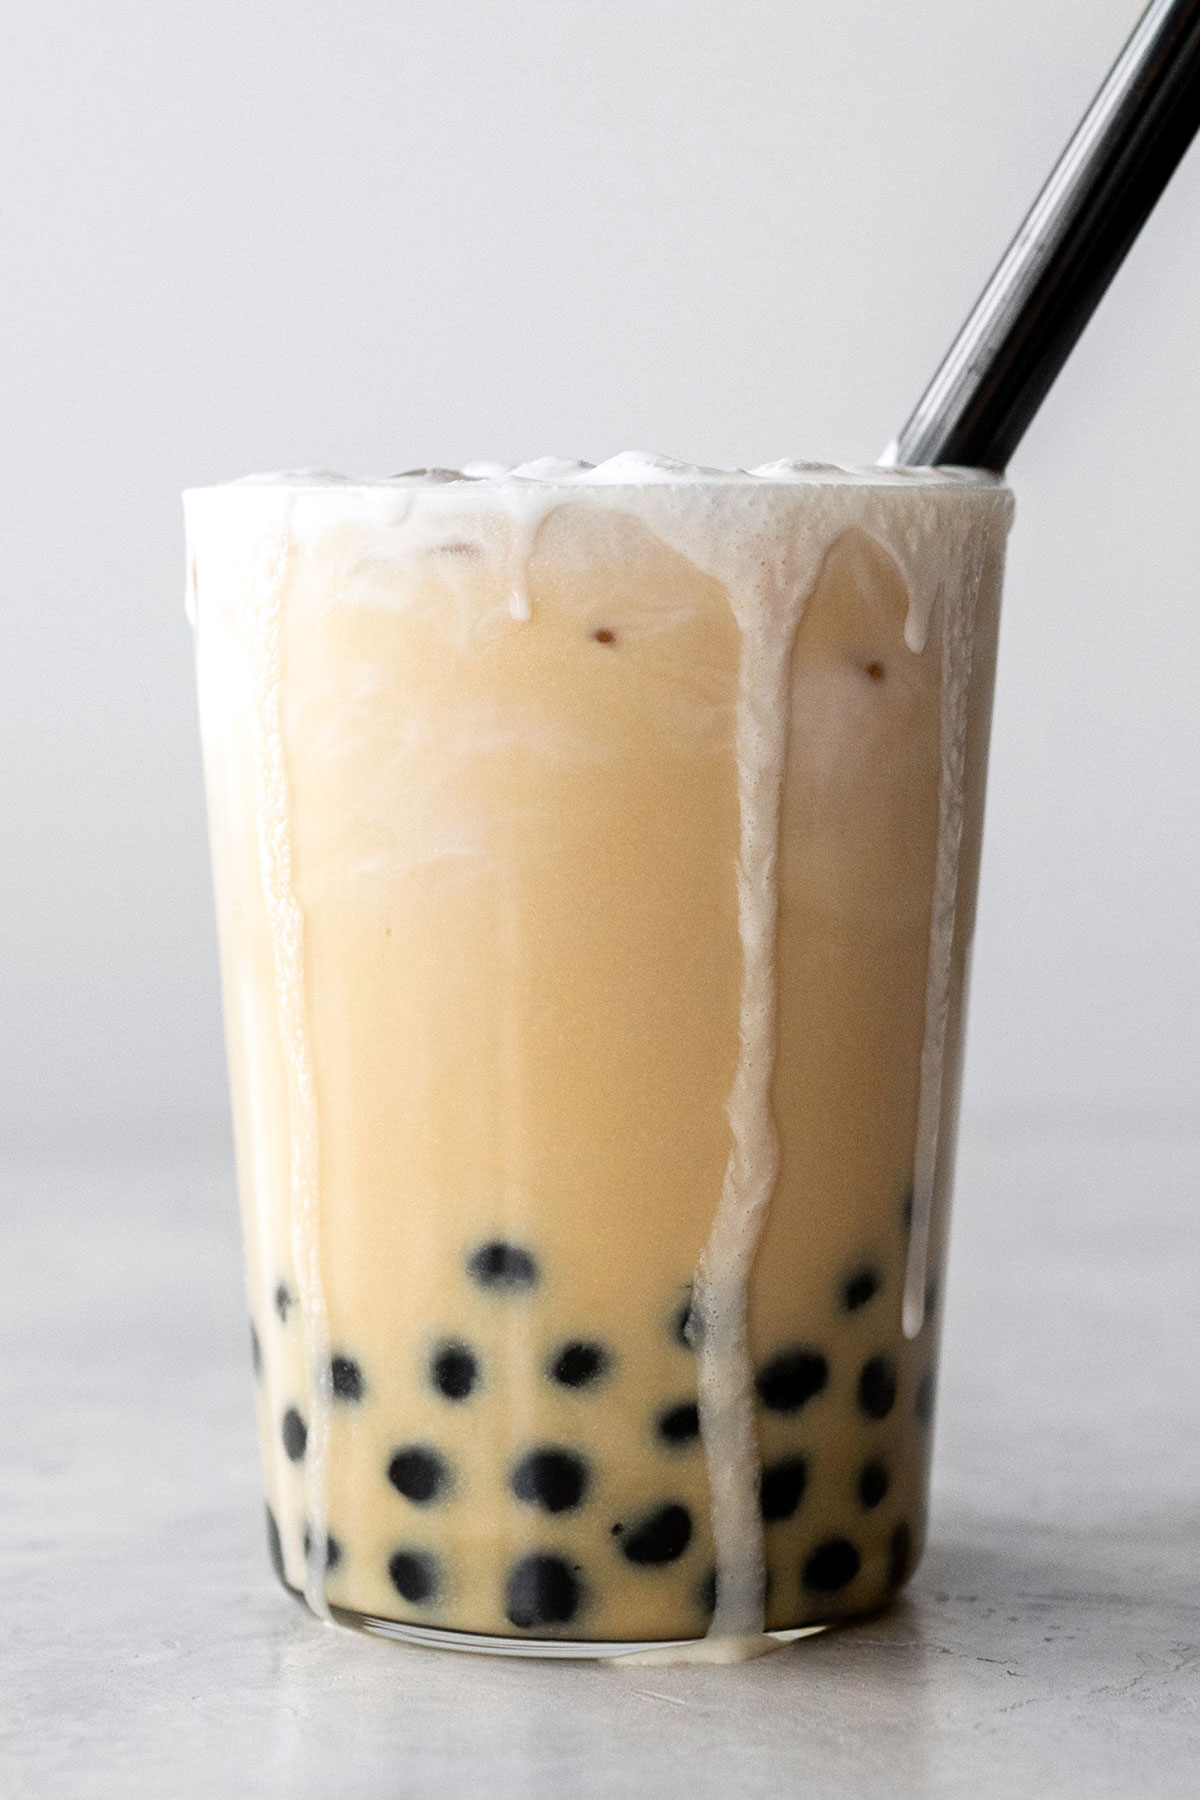 Milk tea with tapioca balls in a tall glass with black straw.